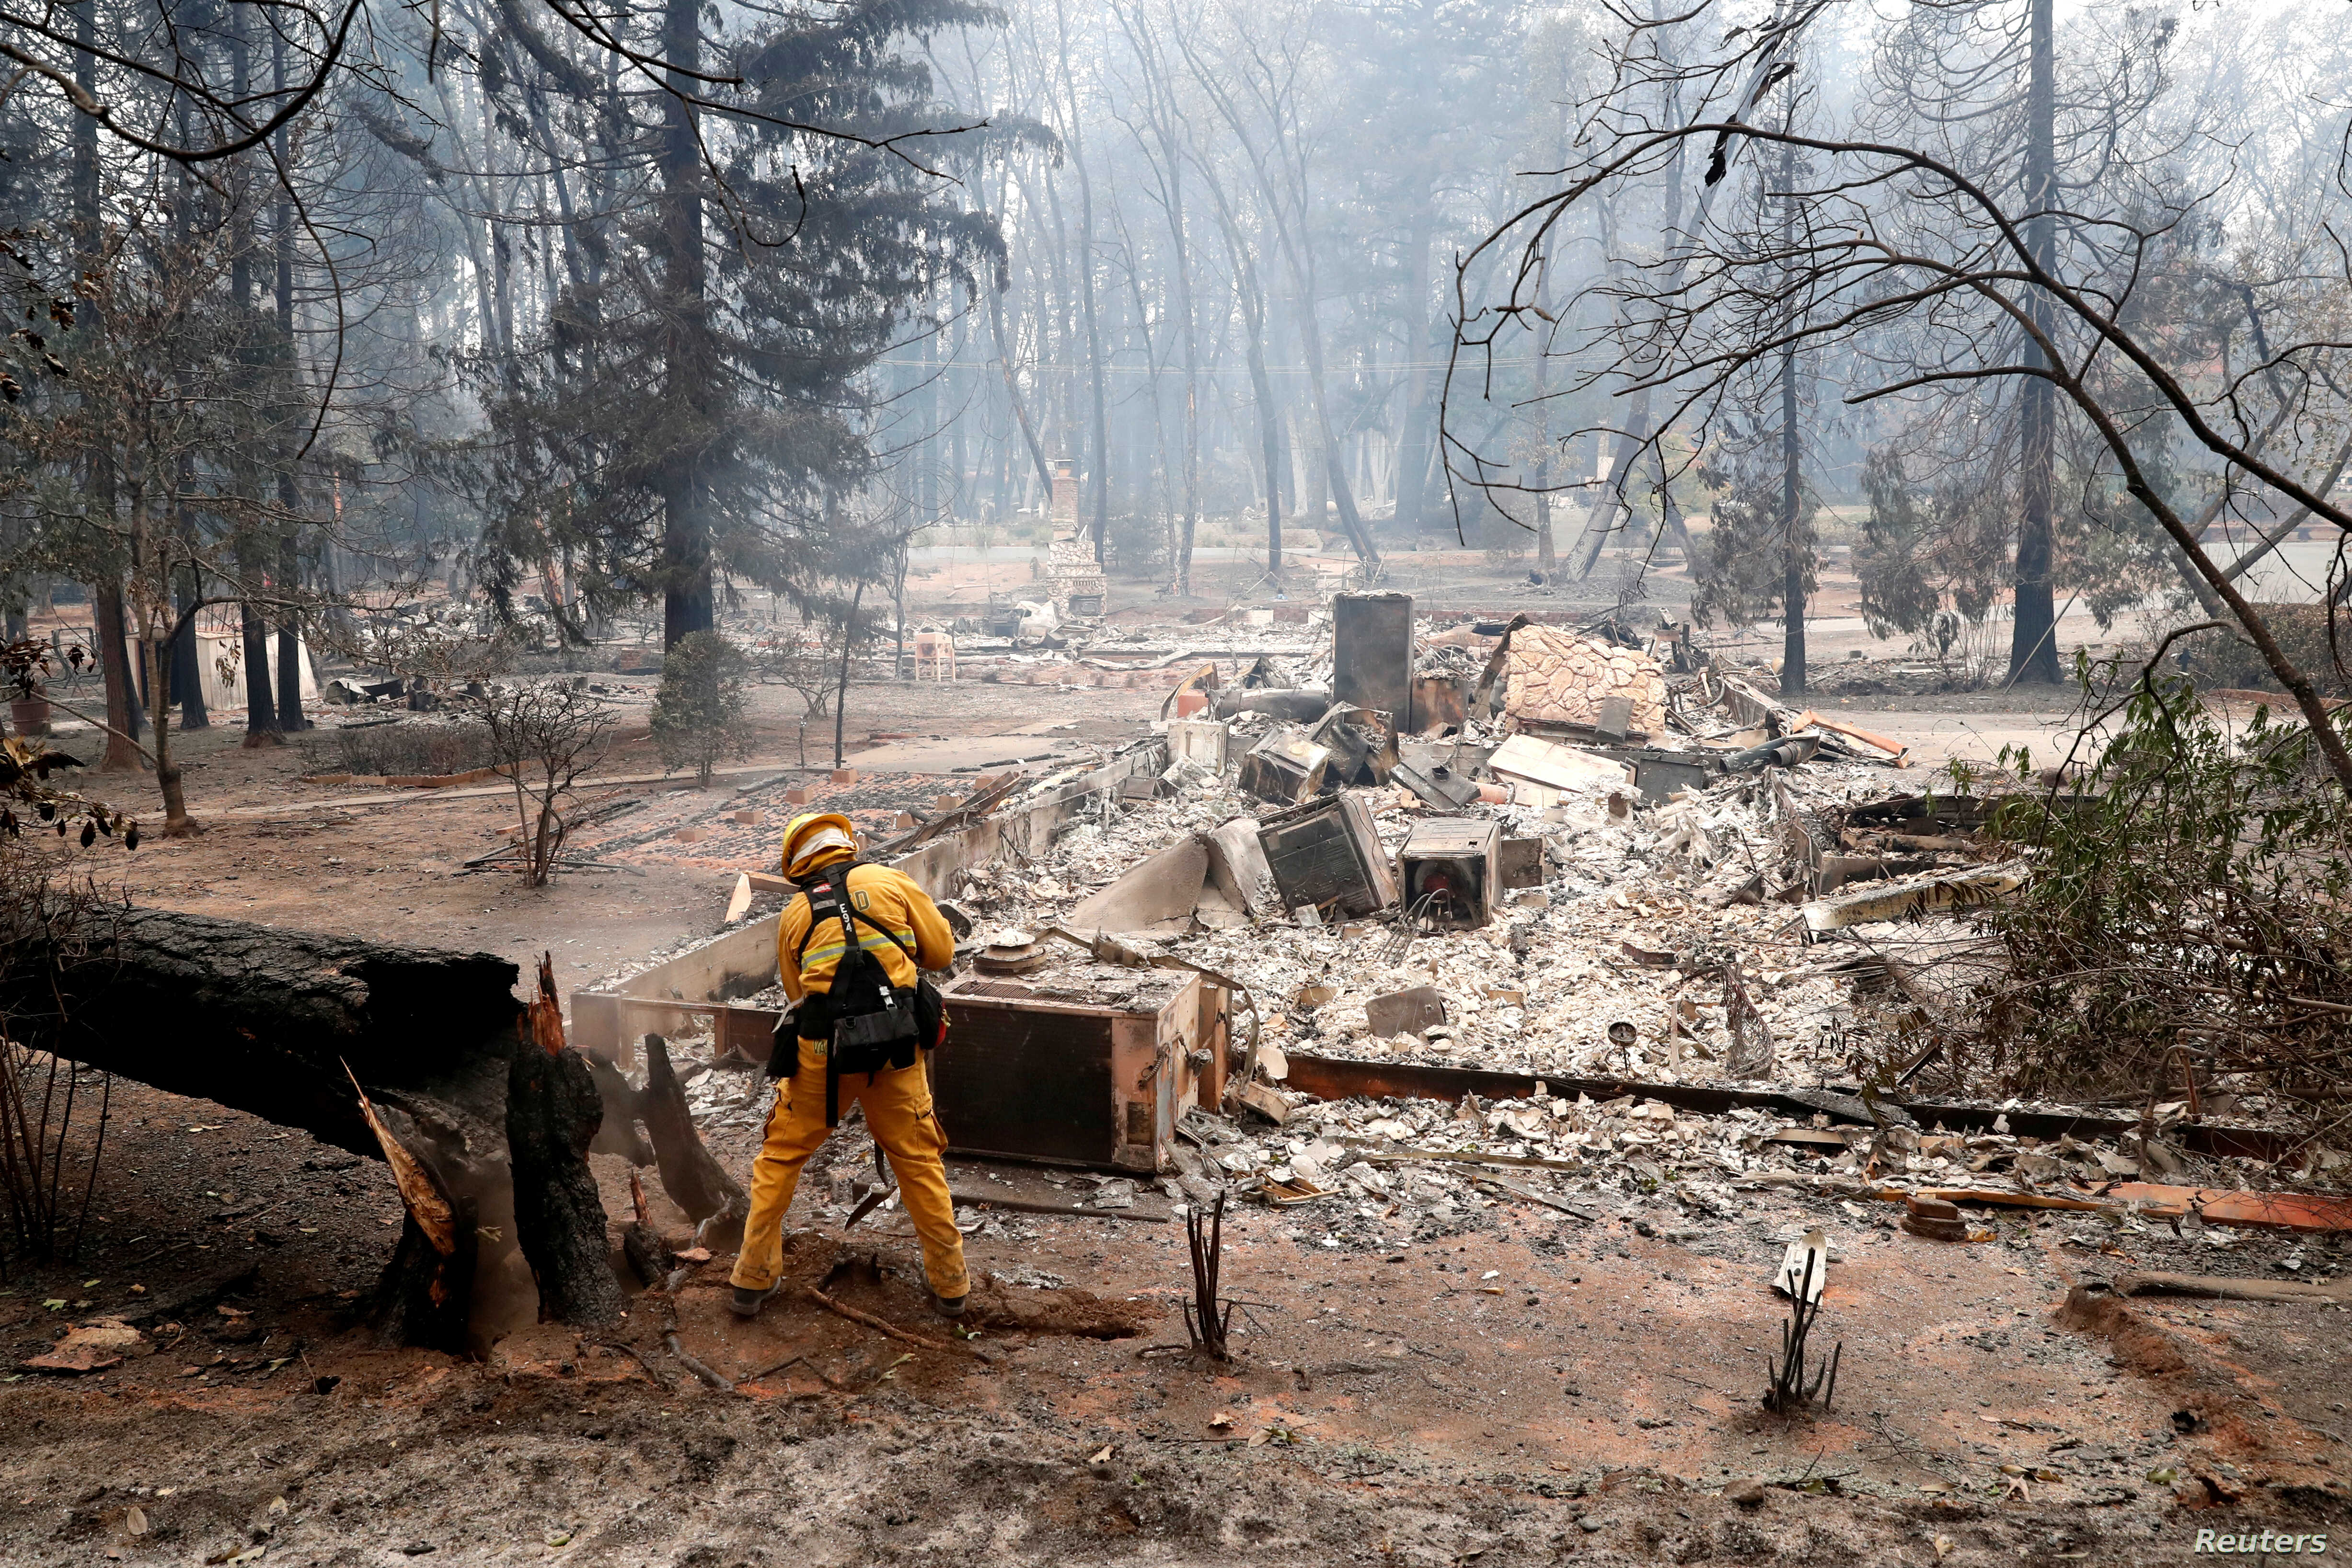 A firefighter extinguishes a hot spot in a neighborhood destroyed by the Camp Fire in Paradise, California, U.S., Nov. 13, 2018.